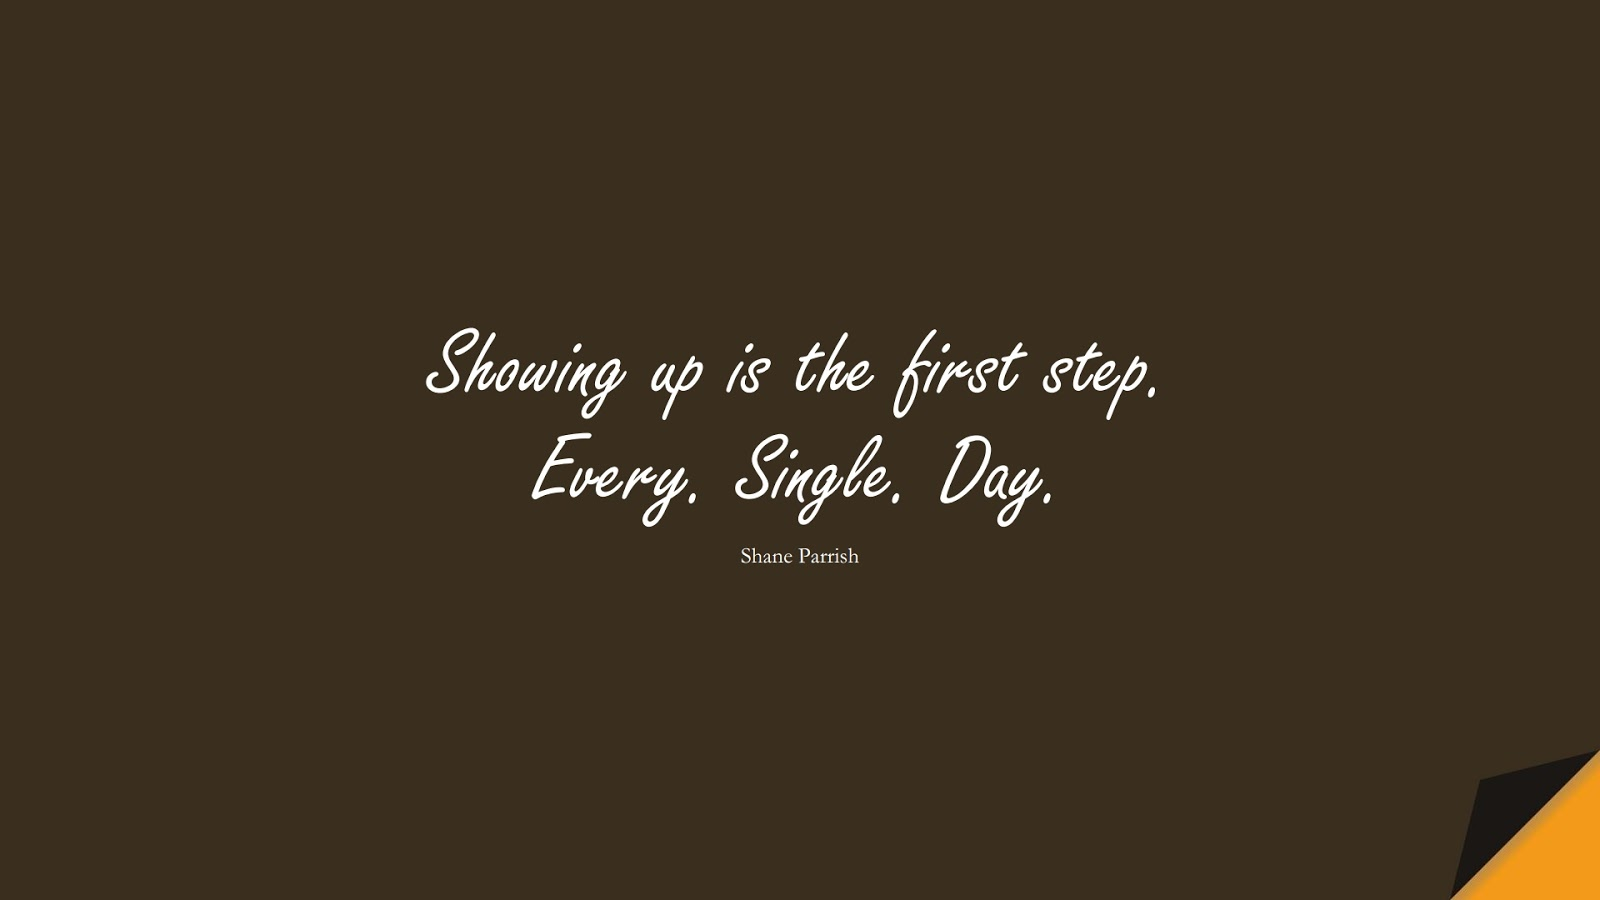 Showing up is the first step. Every. Single. Day. (Shane Parrish);  #NeverGiveUpQuotes